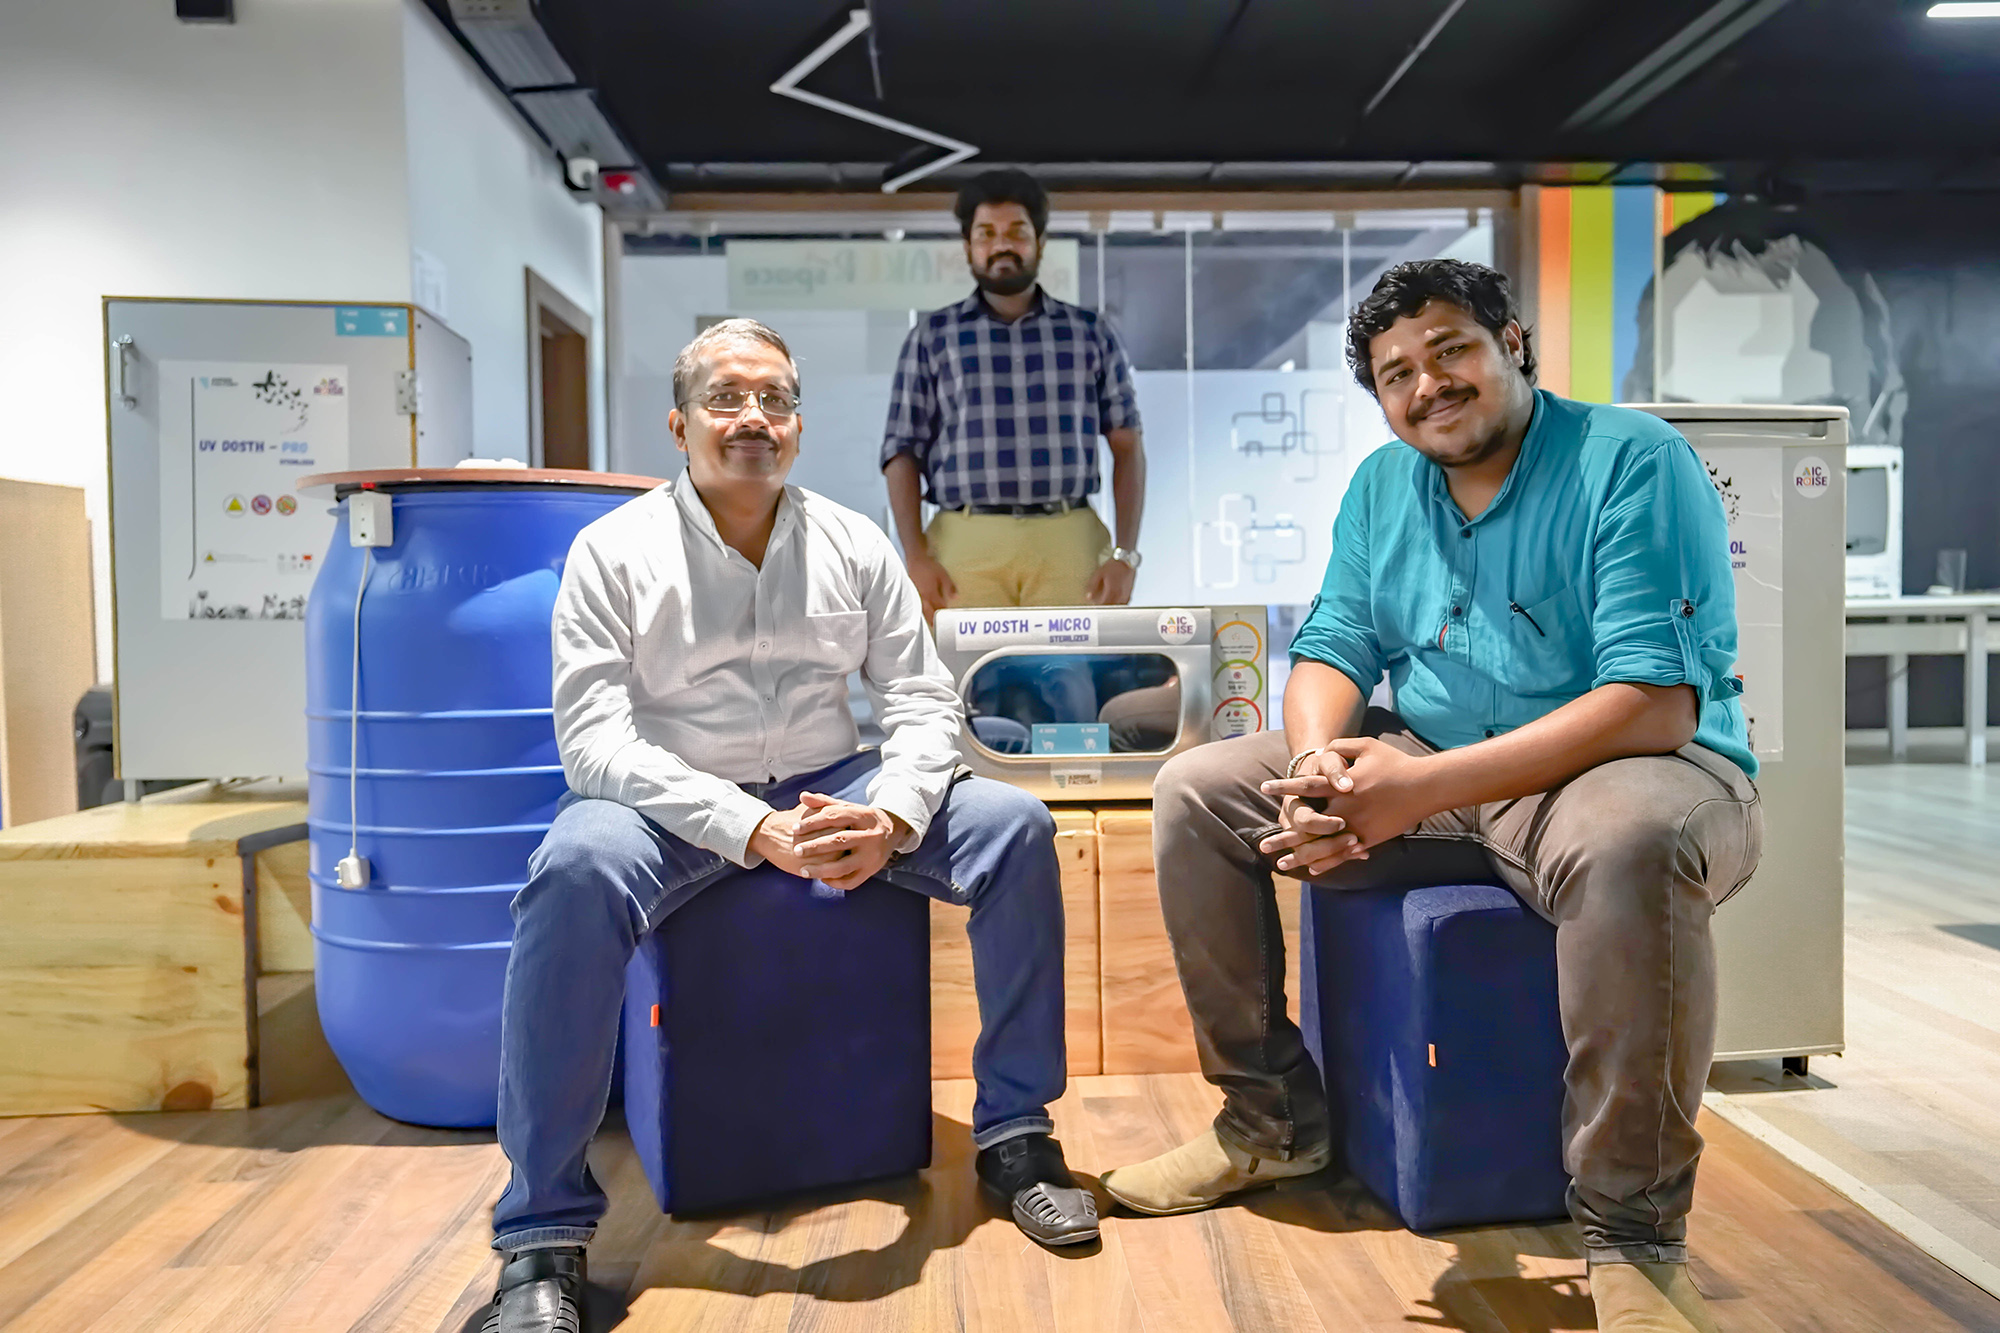 Aspire factory AIC Raise Backed Startup world's most cost-effective sanitisation chamber from Coimbatore